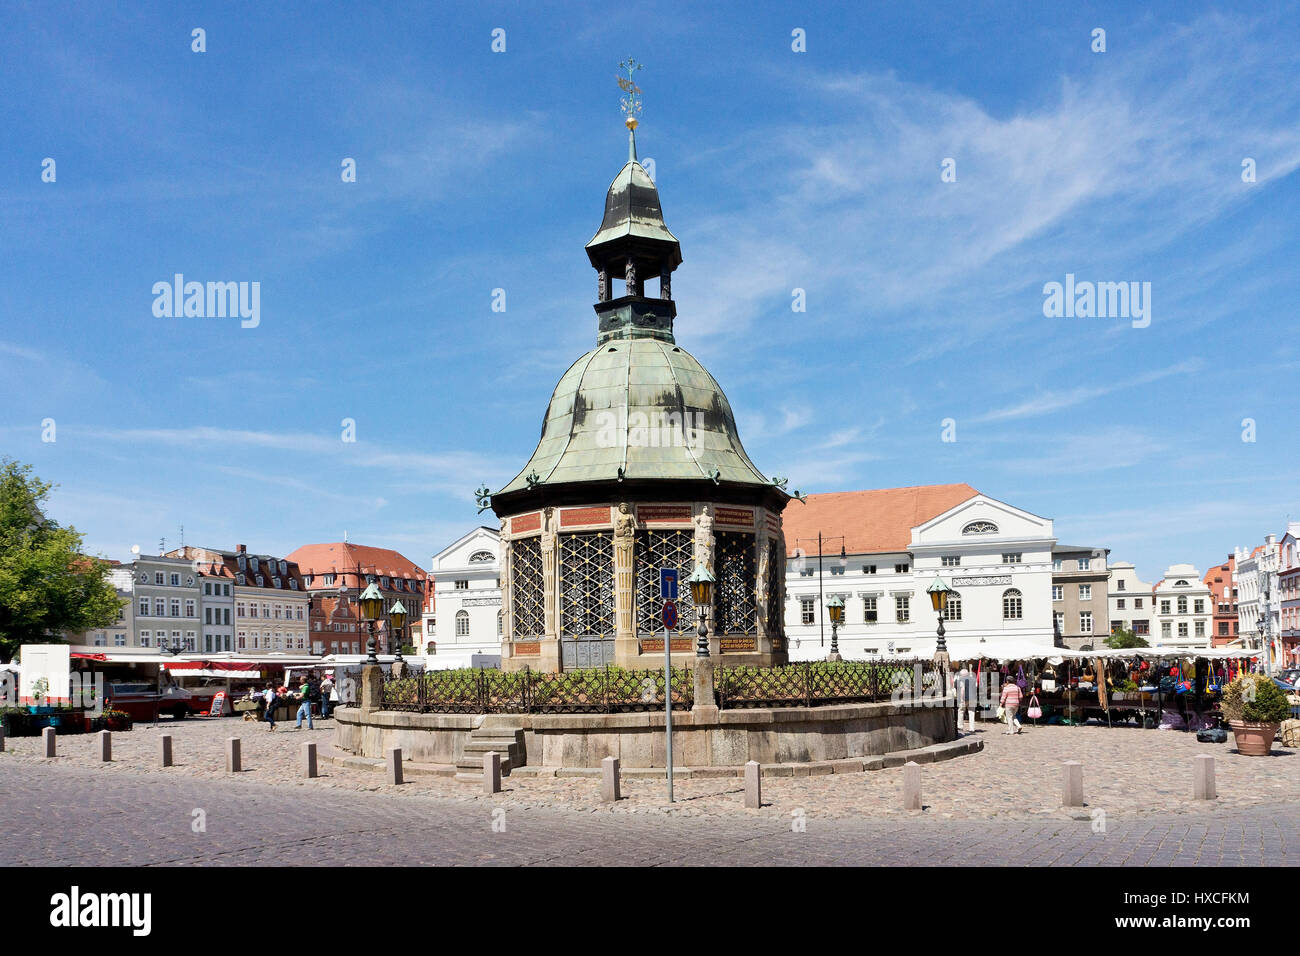 Marketplace of the Hanseatic town Wismar with the pavilion water art, Market Square Wismar with the pavilion fountain - Stock Image